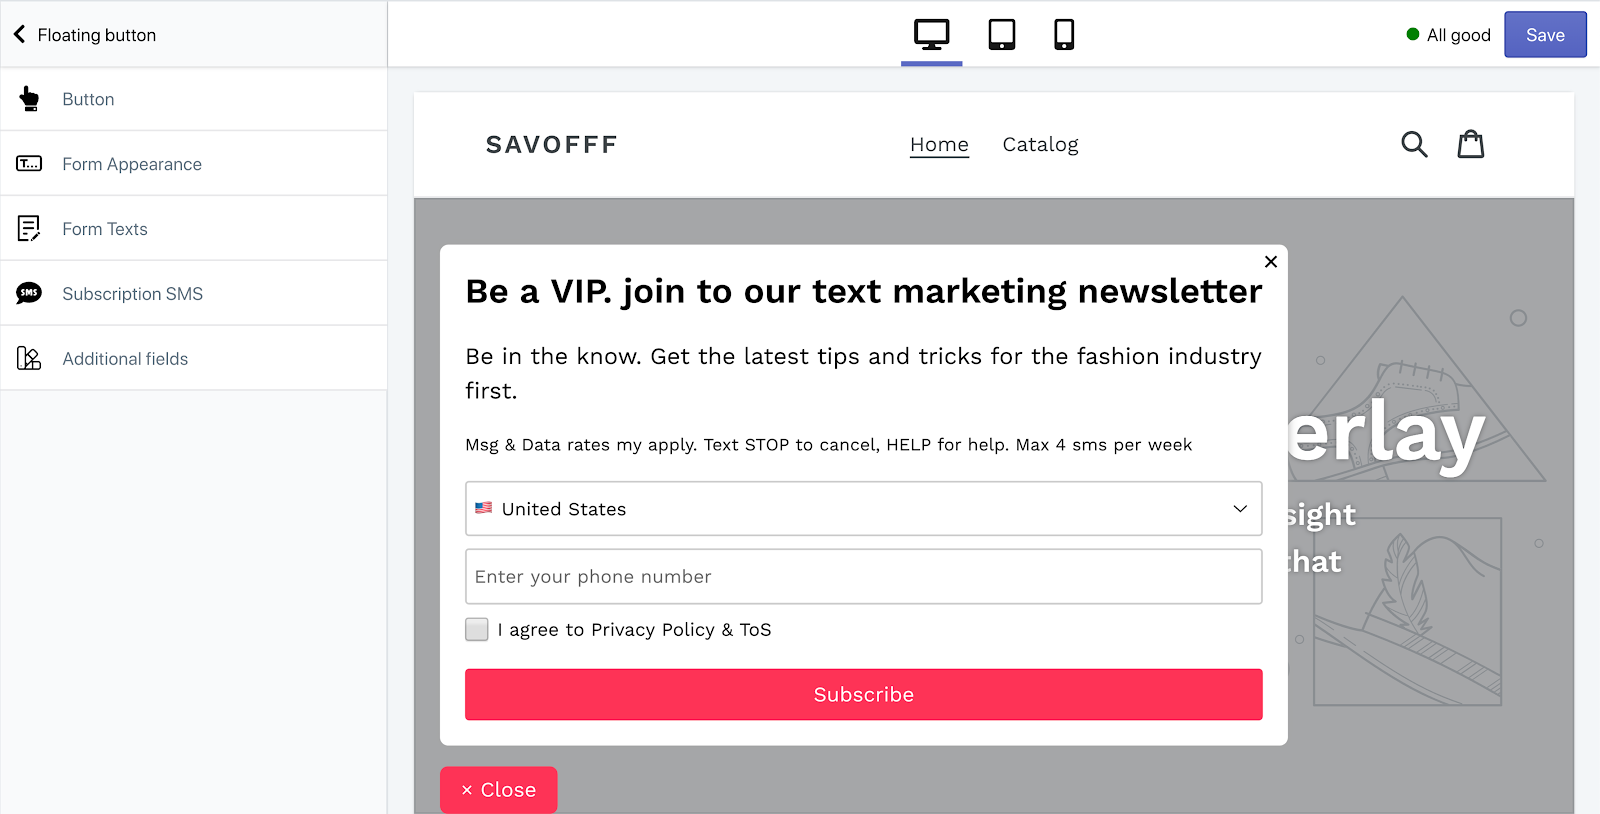 floating_button_subscription_form_SMSBump